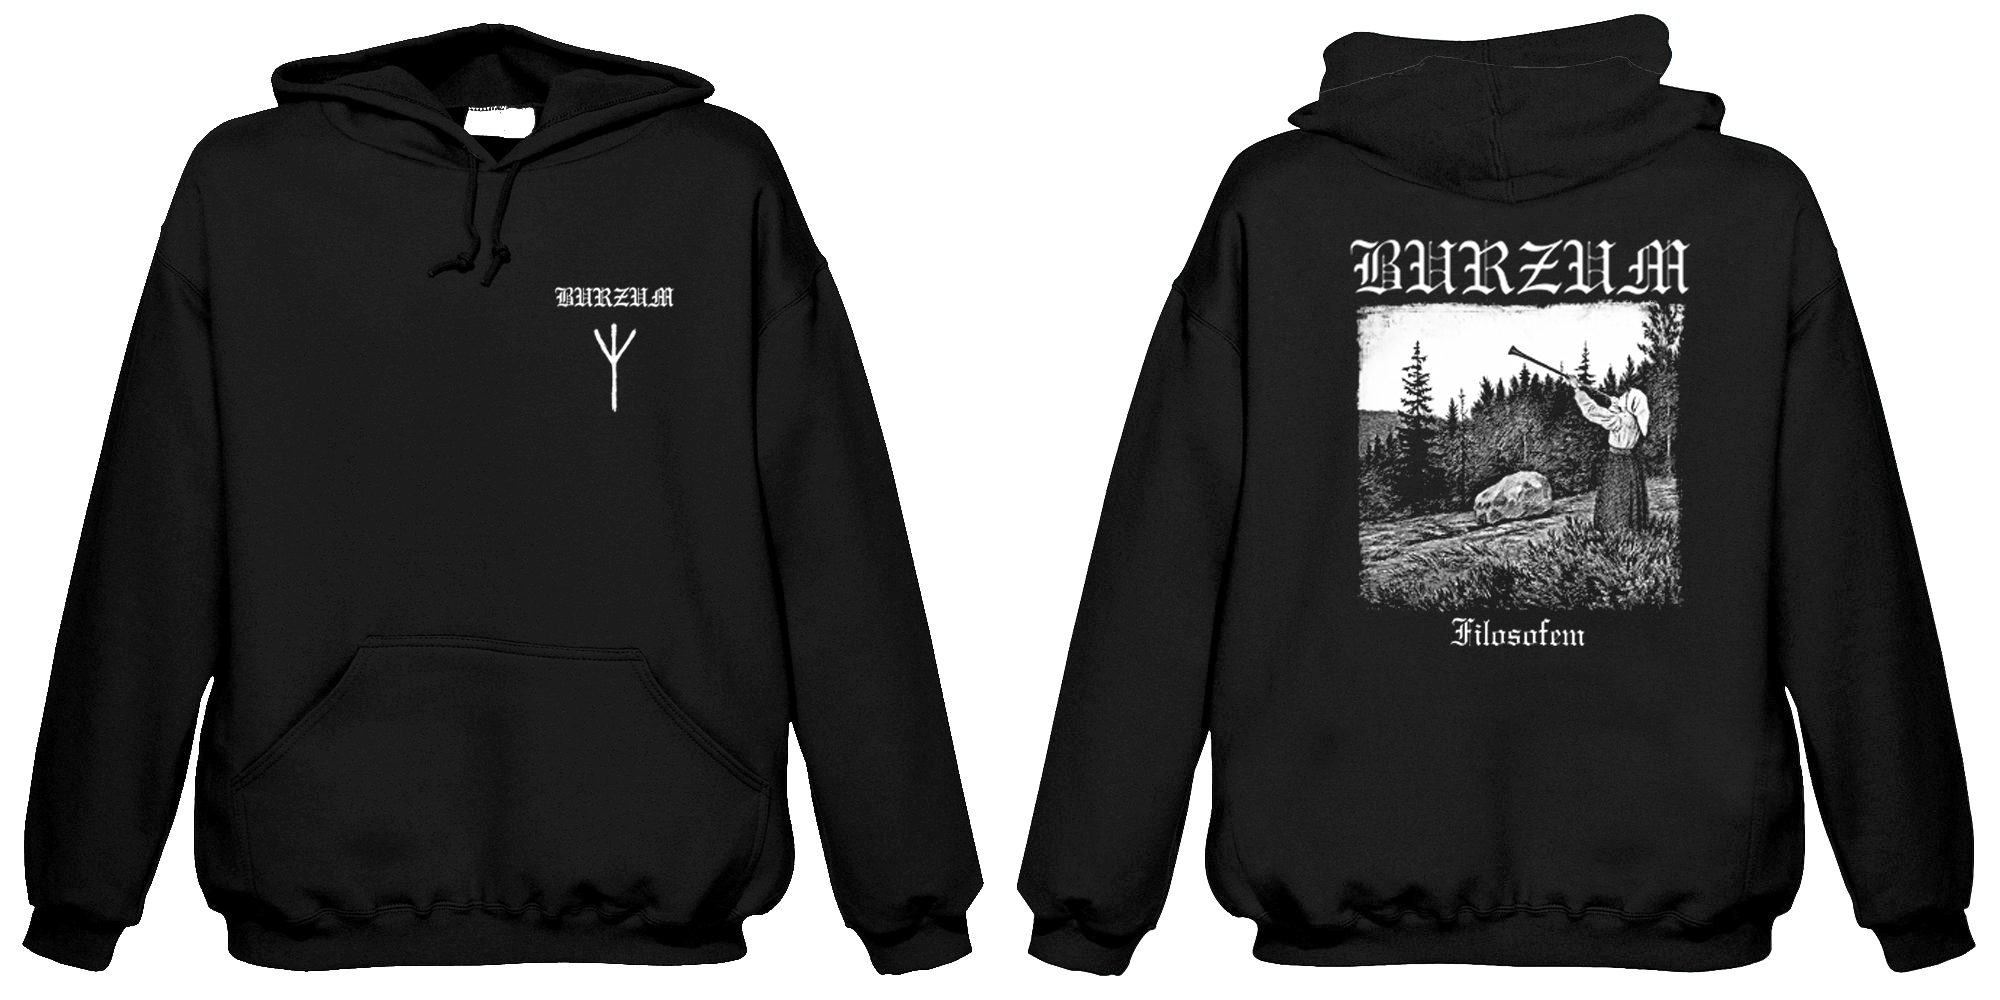 Burzum - Filosofem  (Hooded Sweatshirt)